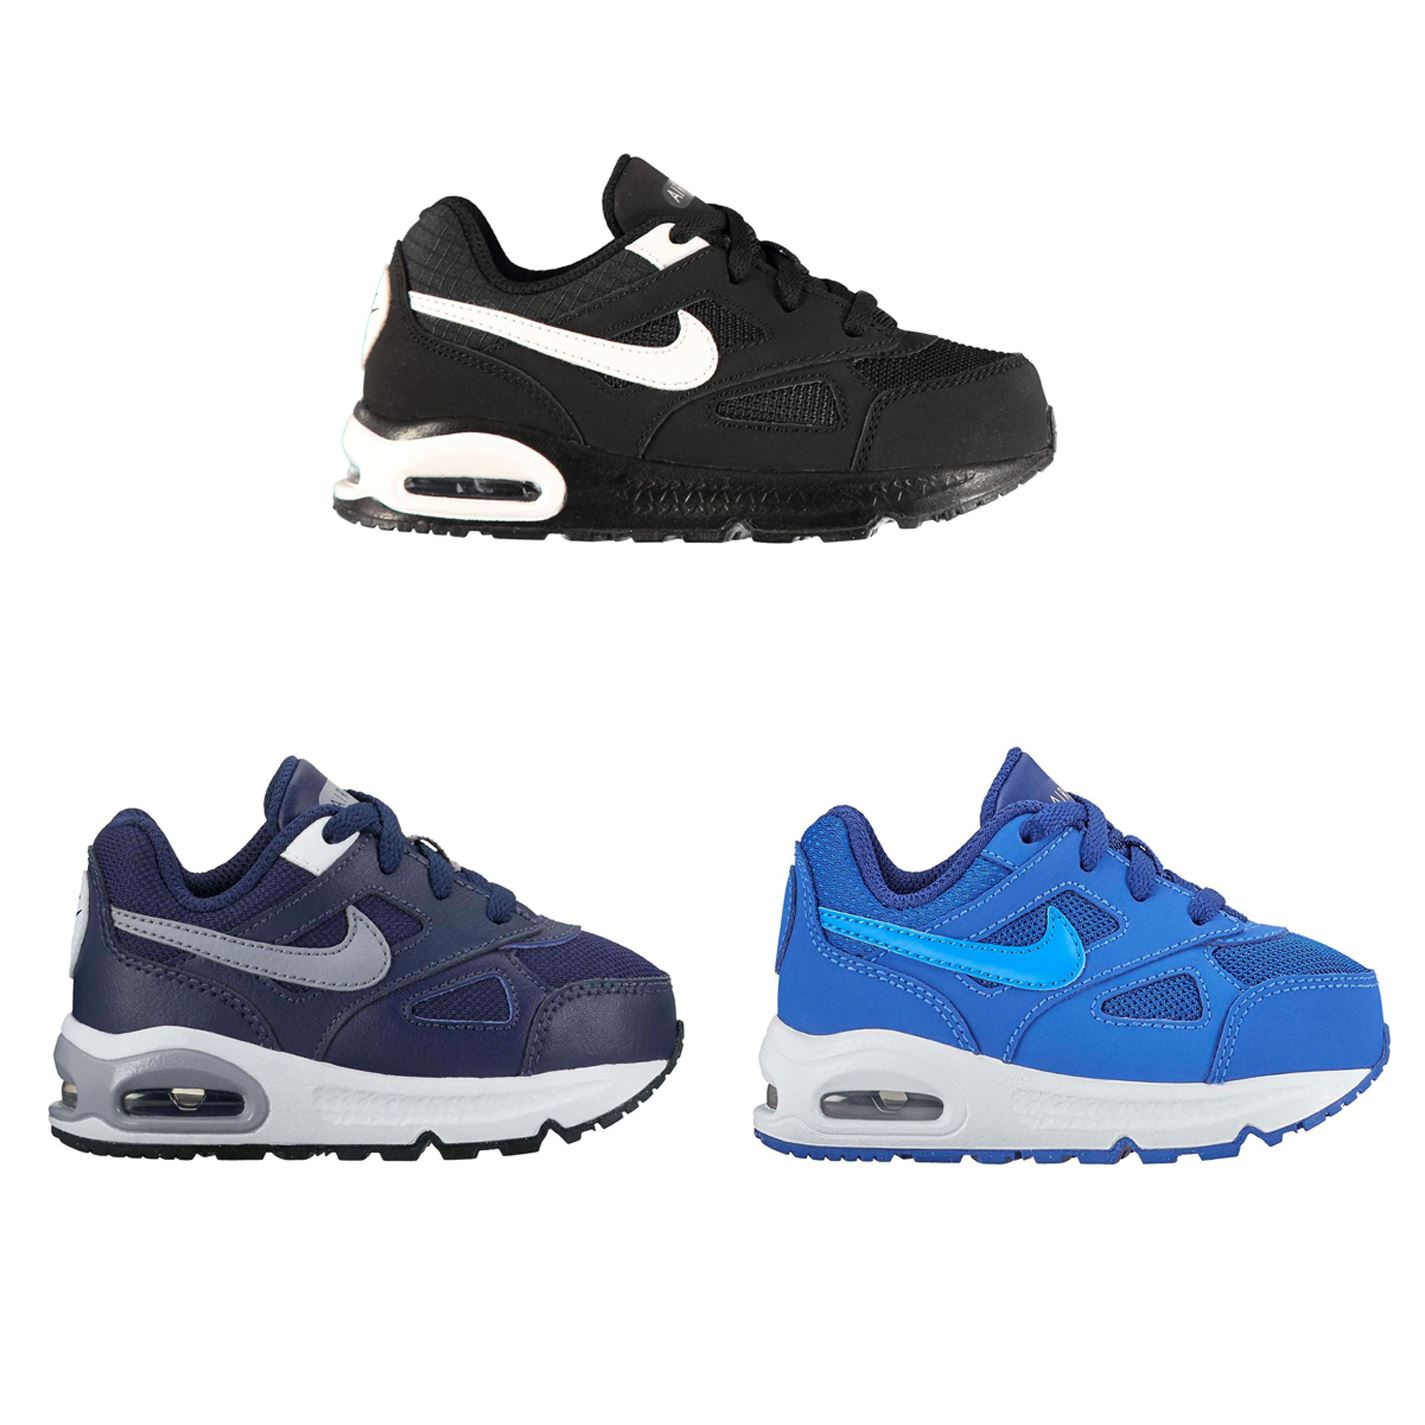 6c23bfb87361f7 ... Nike Air Max Ivo Infant Boys Trainers Shoes Footwear ...